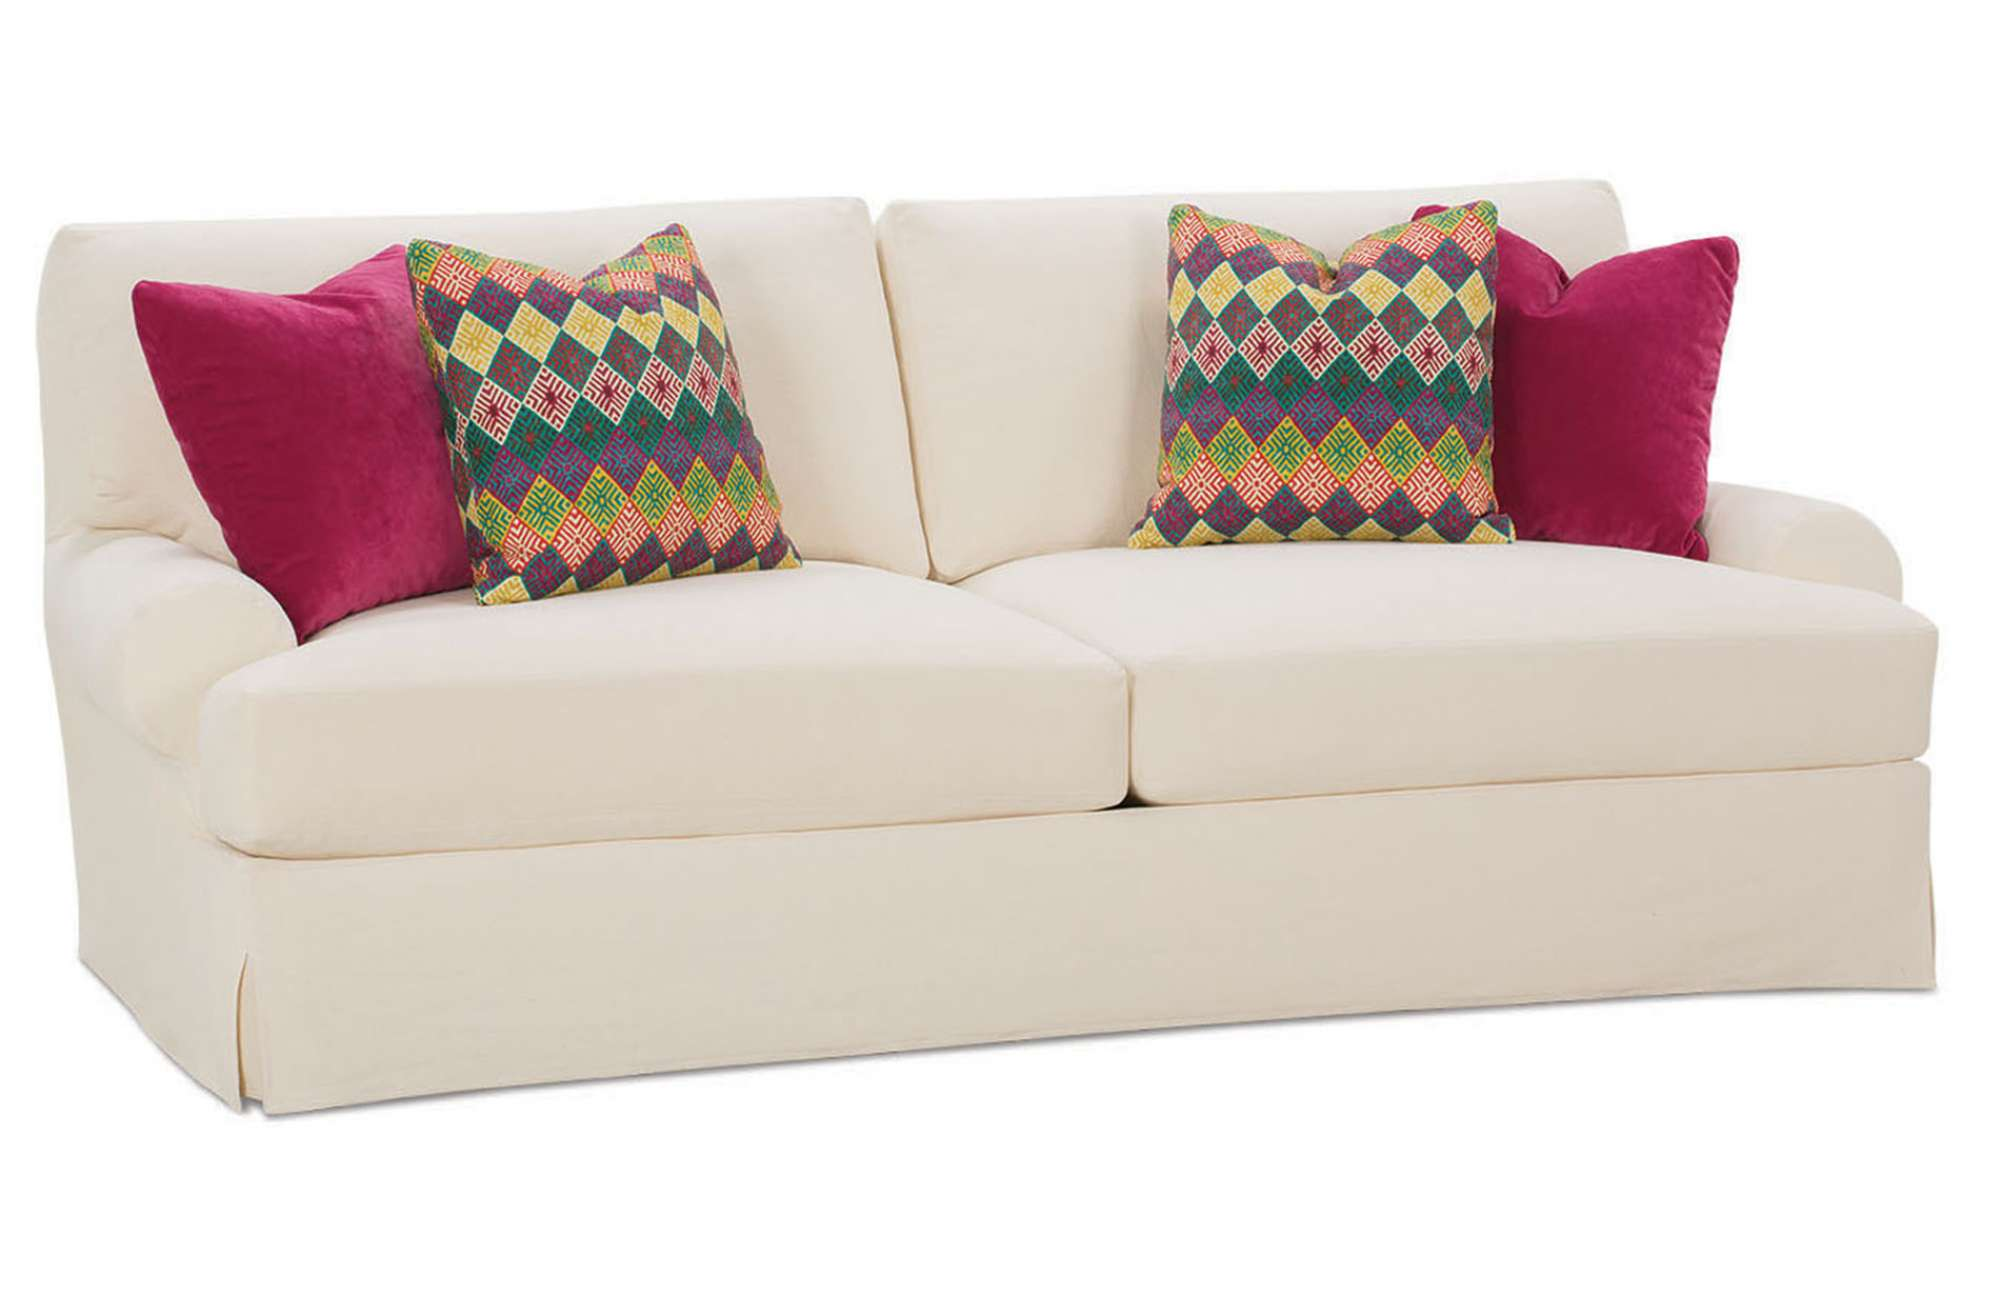 T shaped sofa slipcovers thesofa Loveseat slipcover